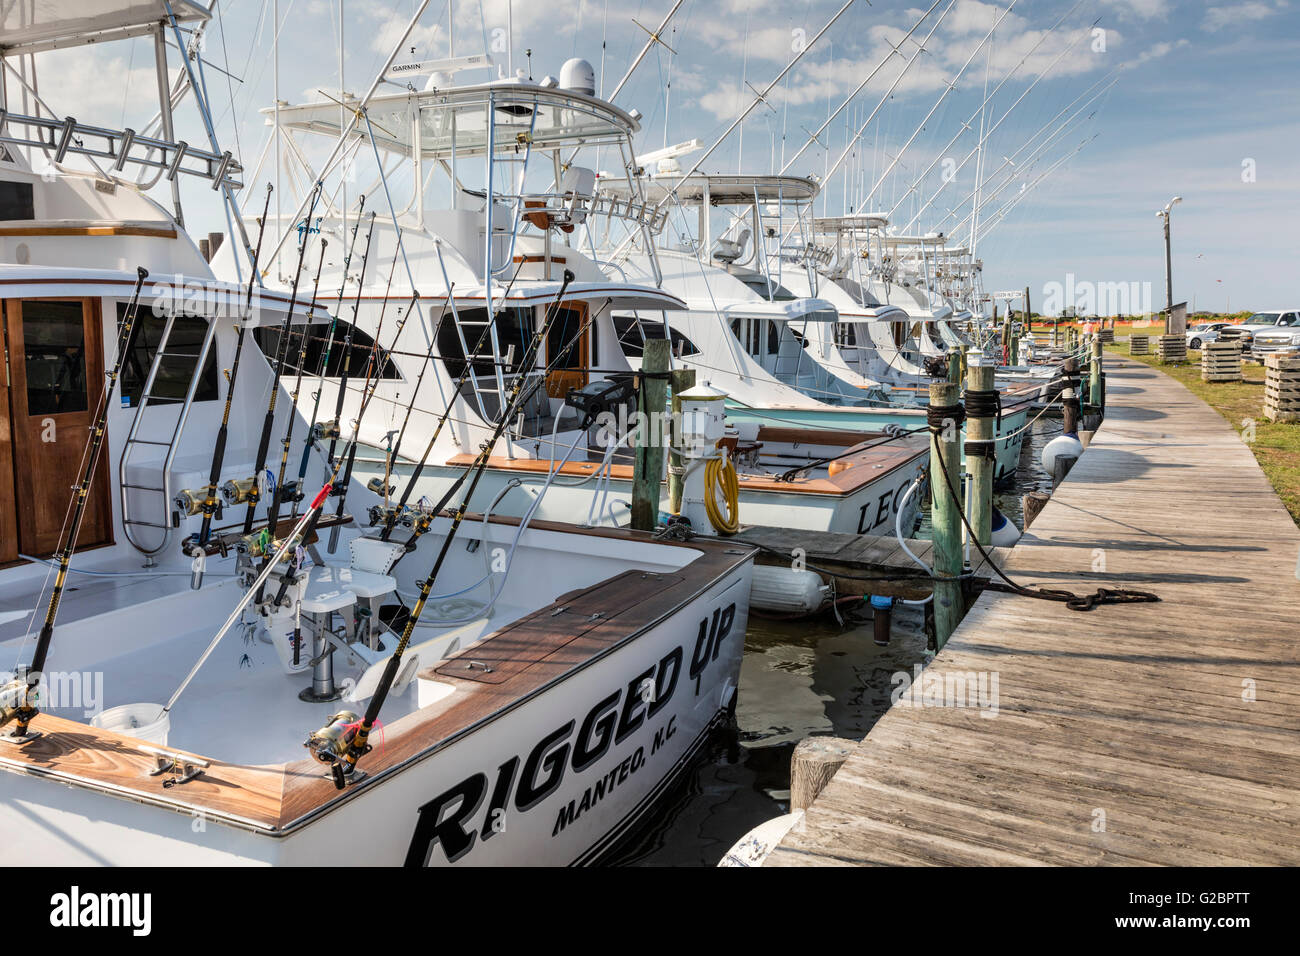 Deep Sea Sport Fishing Boats For Hire Docked At Oregon